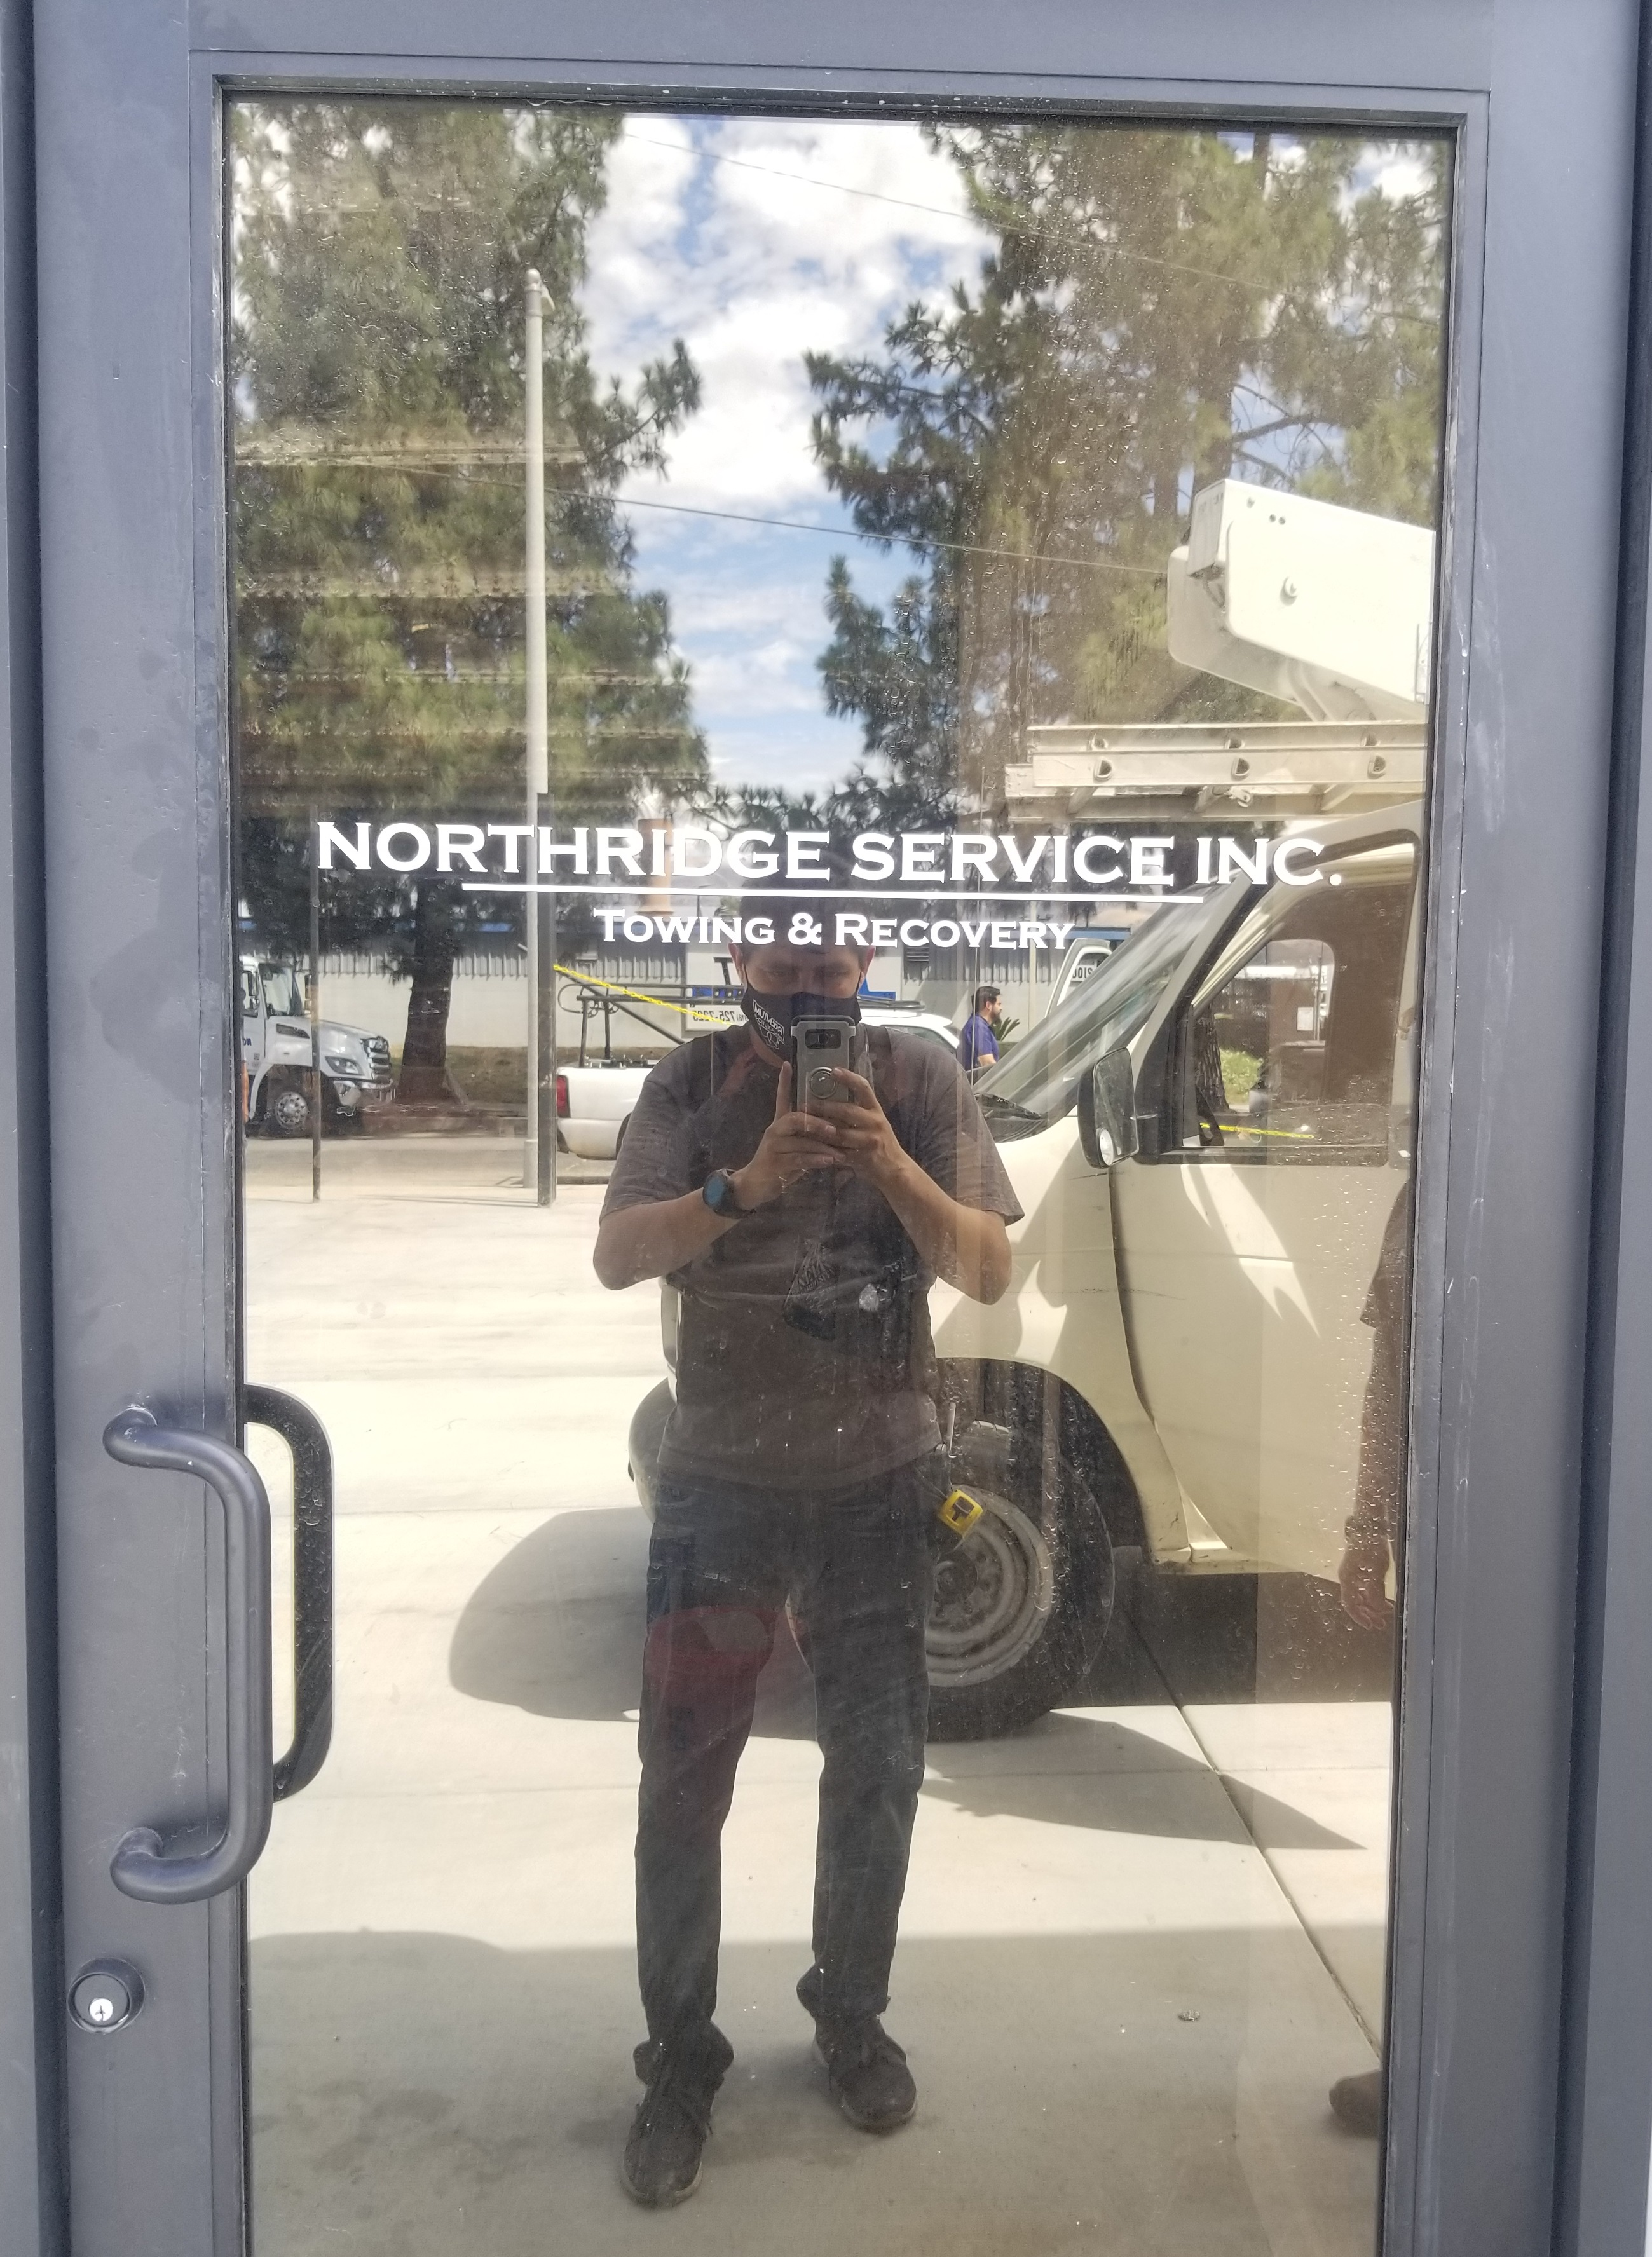 Our work for Northridge Auto Service continues. This time it is indoor office signage, specifically a wall graphics business sign package.